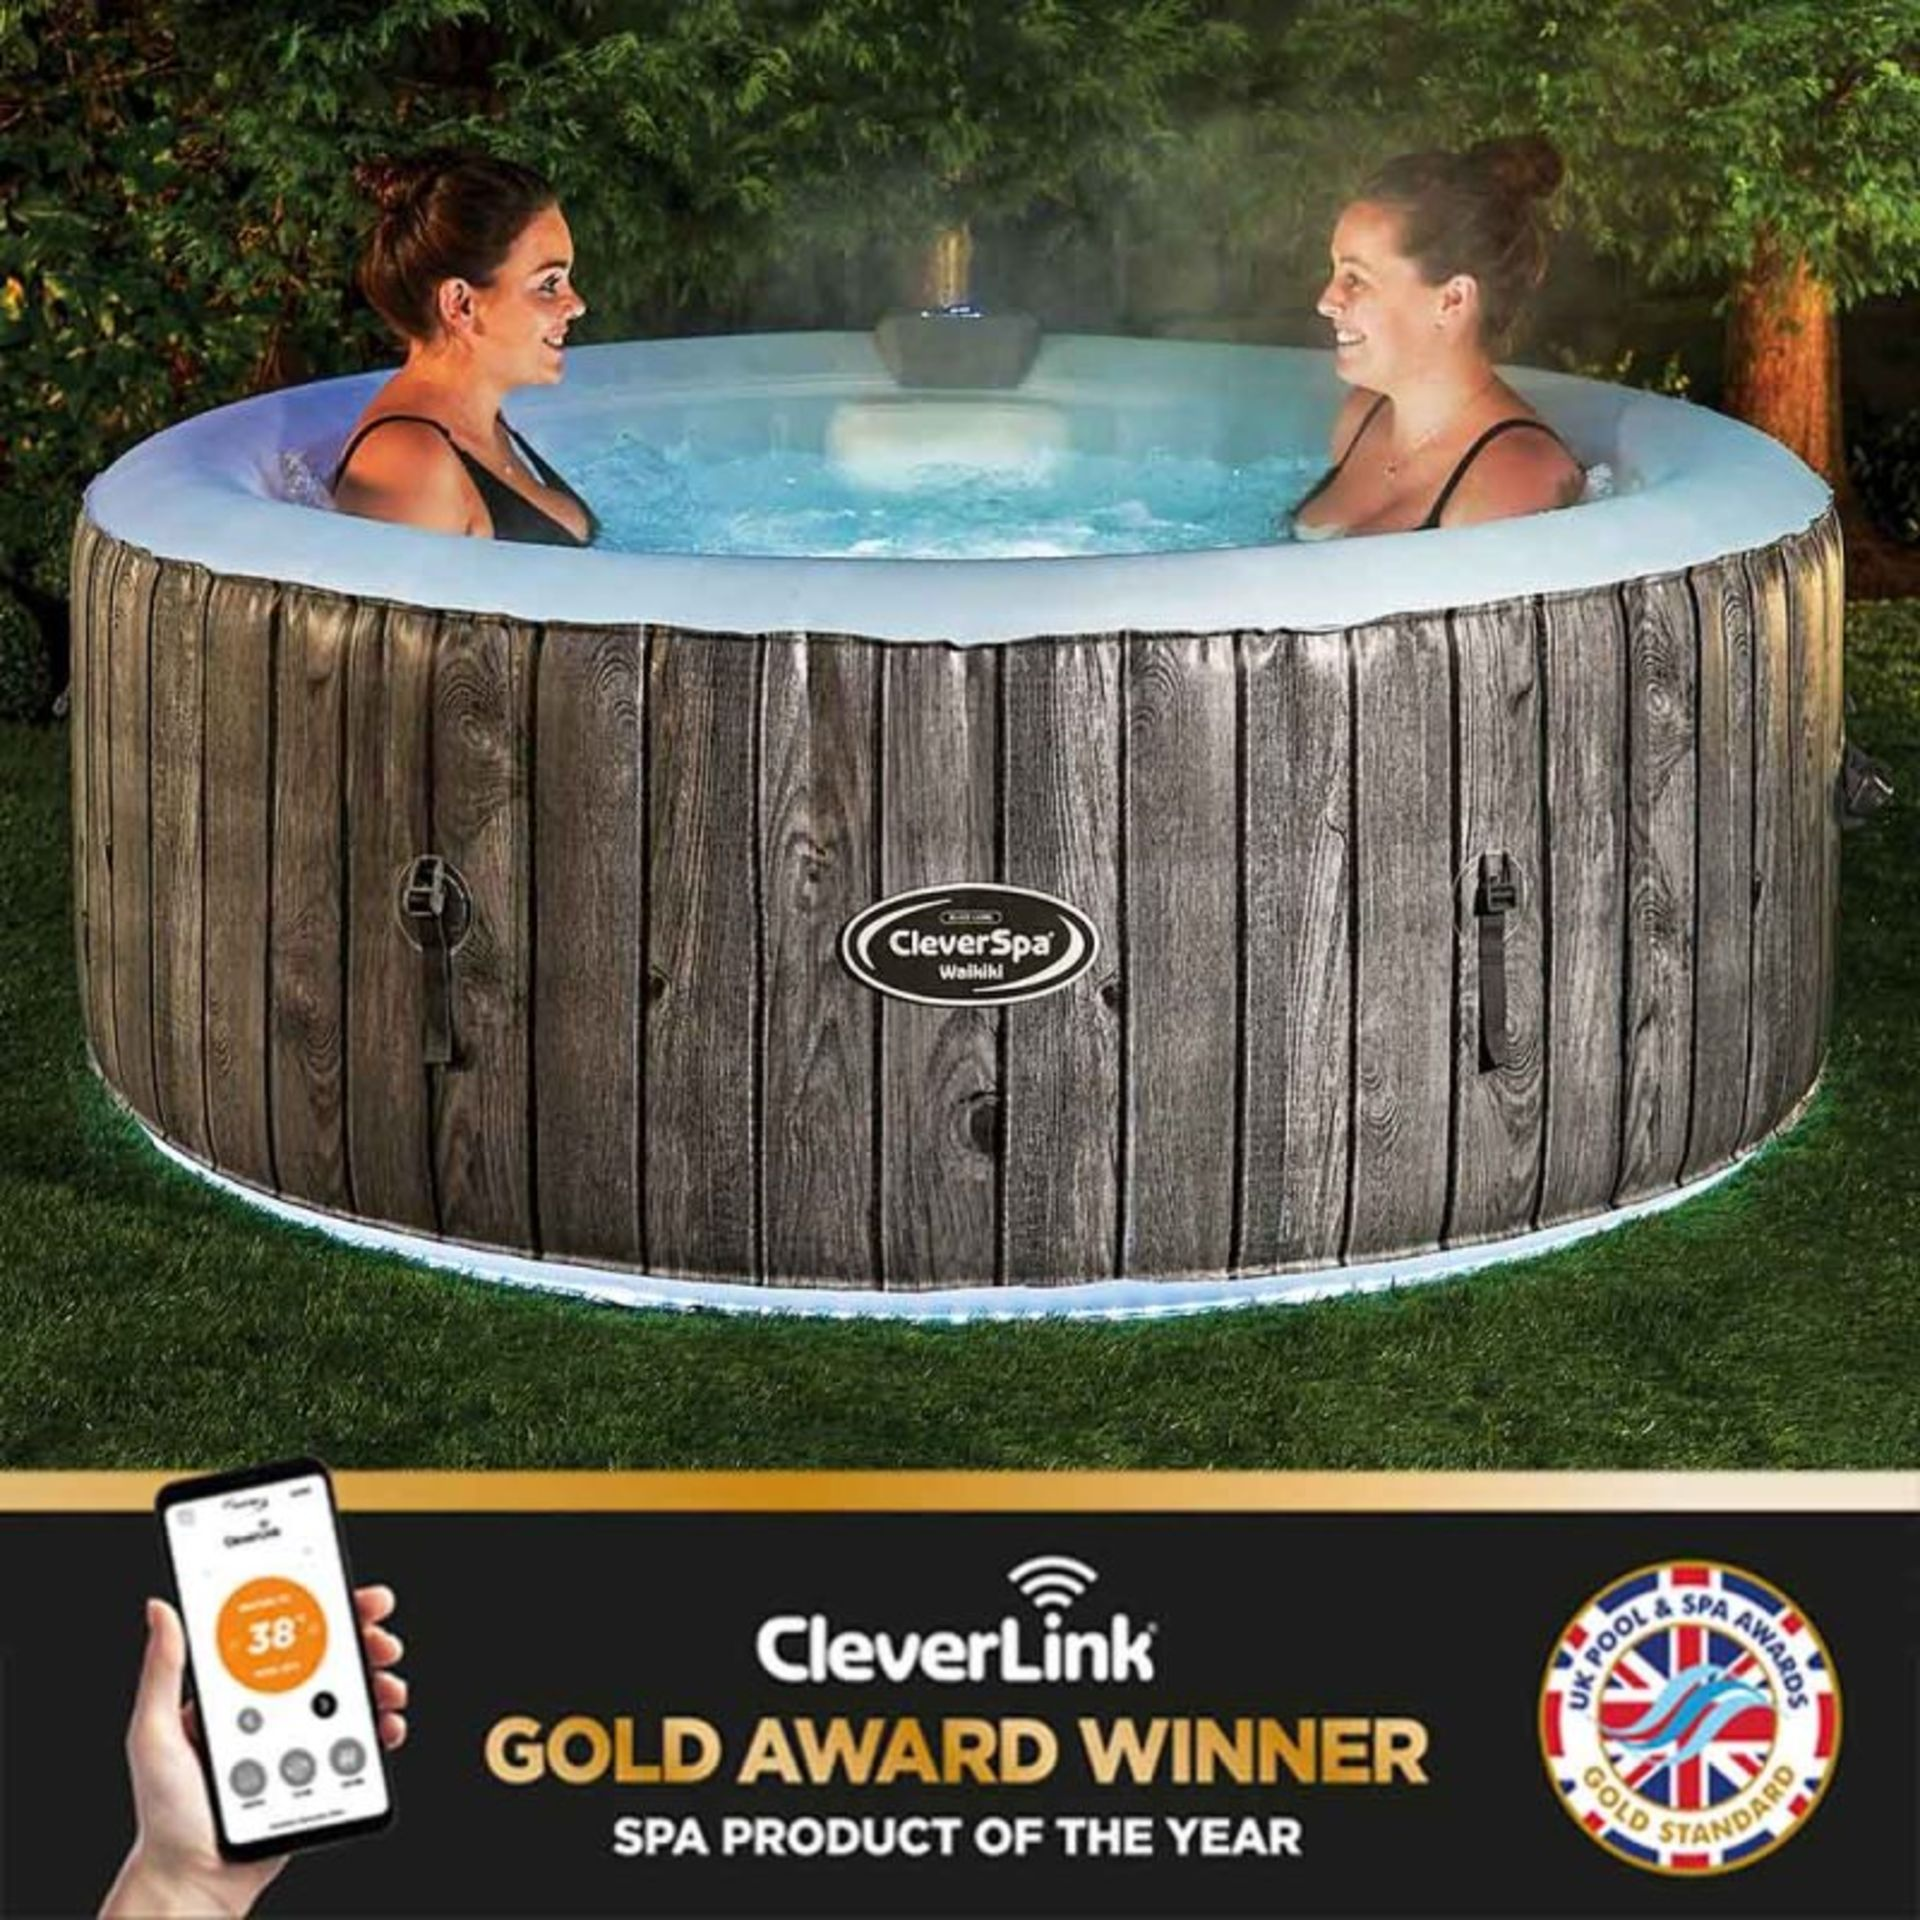 (REF2101598) 1 Pallet of Customer Returns - Retail value at new £3354.56. To include: CLEVERSPA 6 - Image 2 of 2